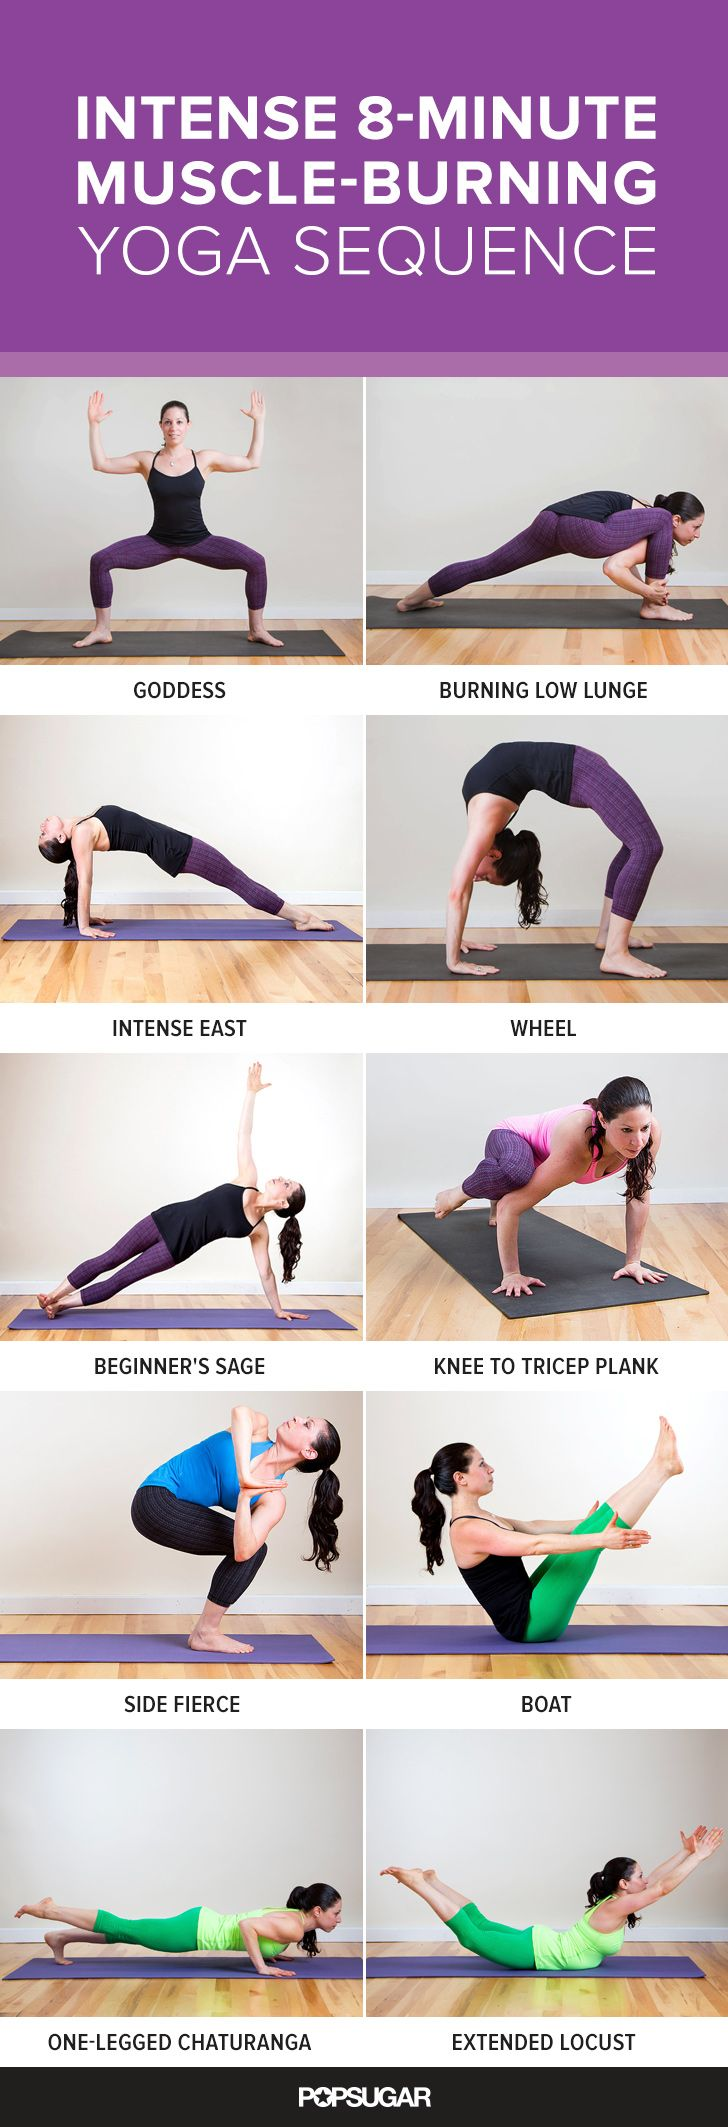 This yoga sequence helps to strengthen muscles and tone the body.